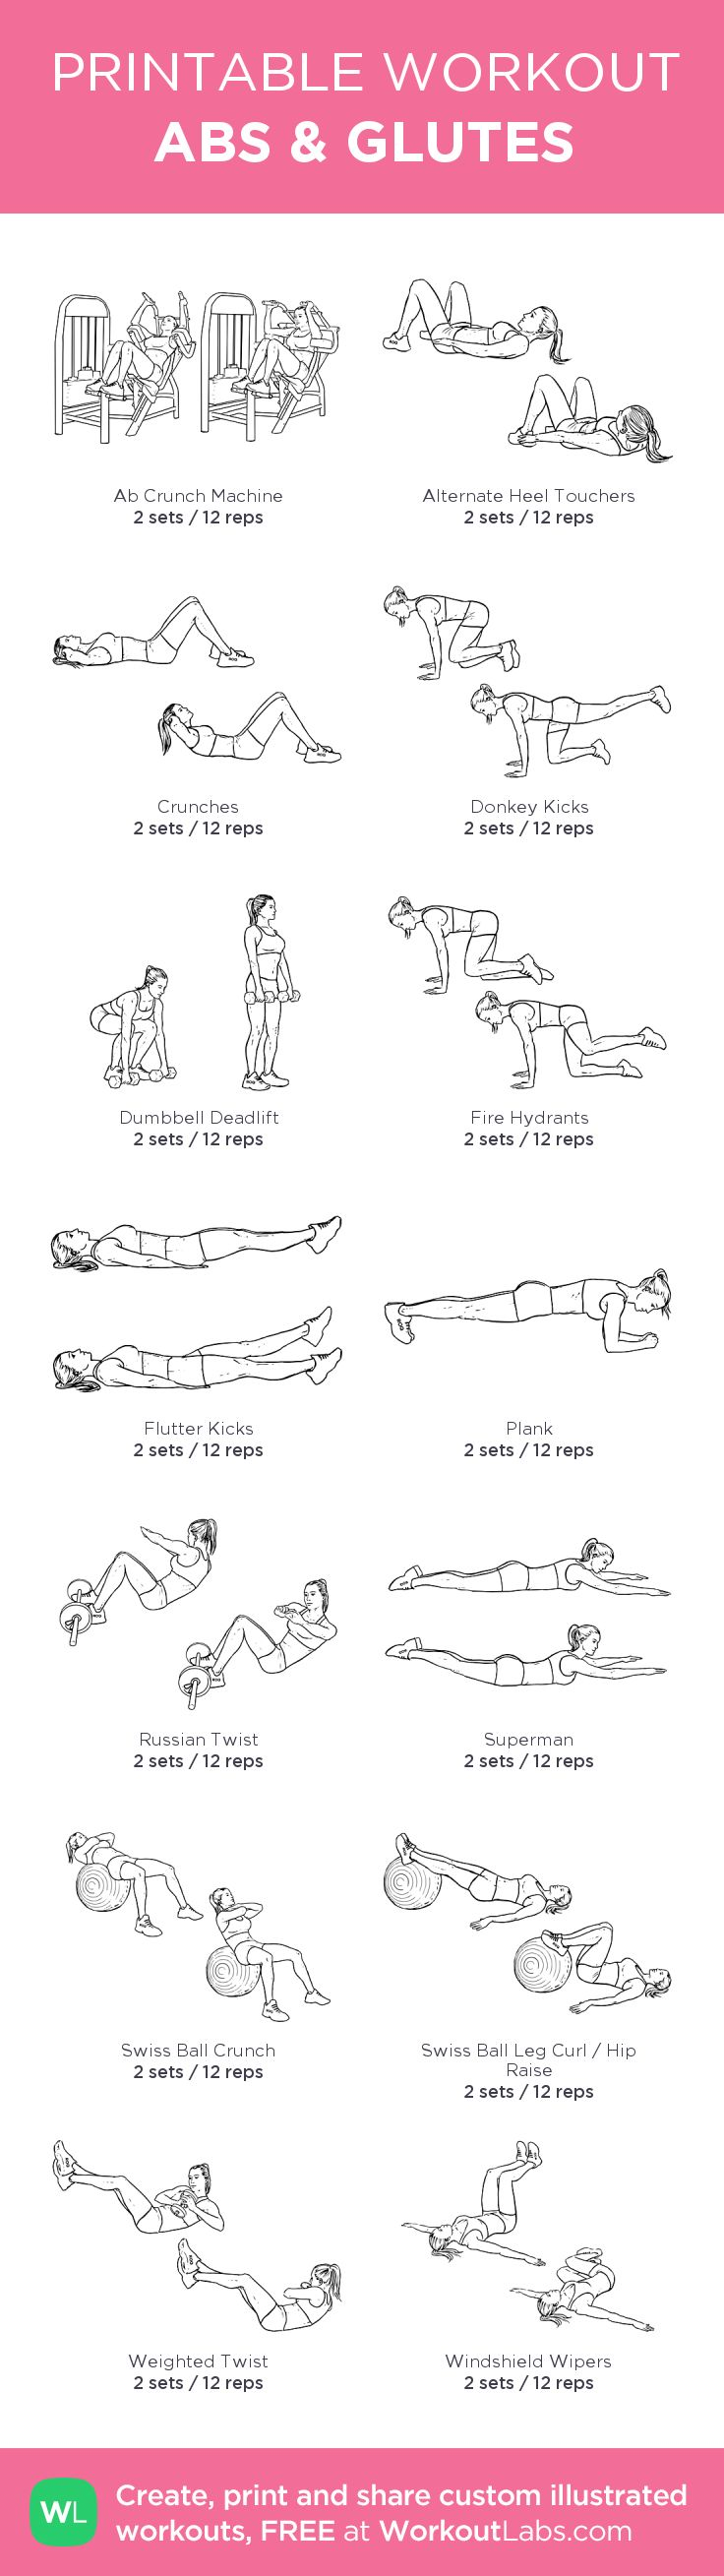 ABS GLUTES: my custom printable workout by @WorkoutLabs #workoutlabs #customworkout